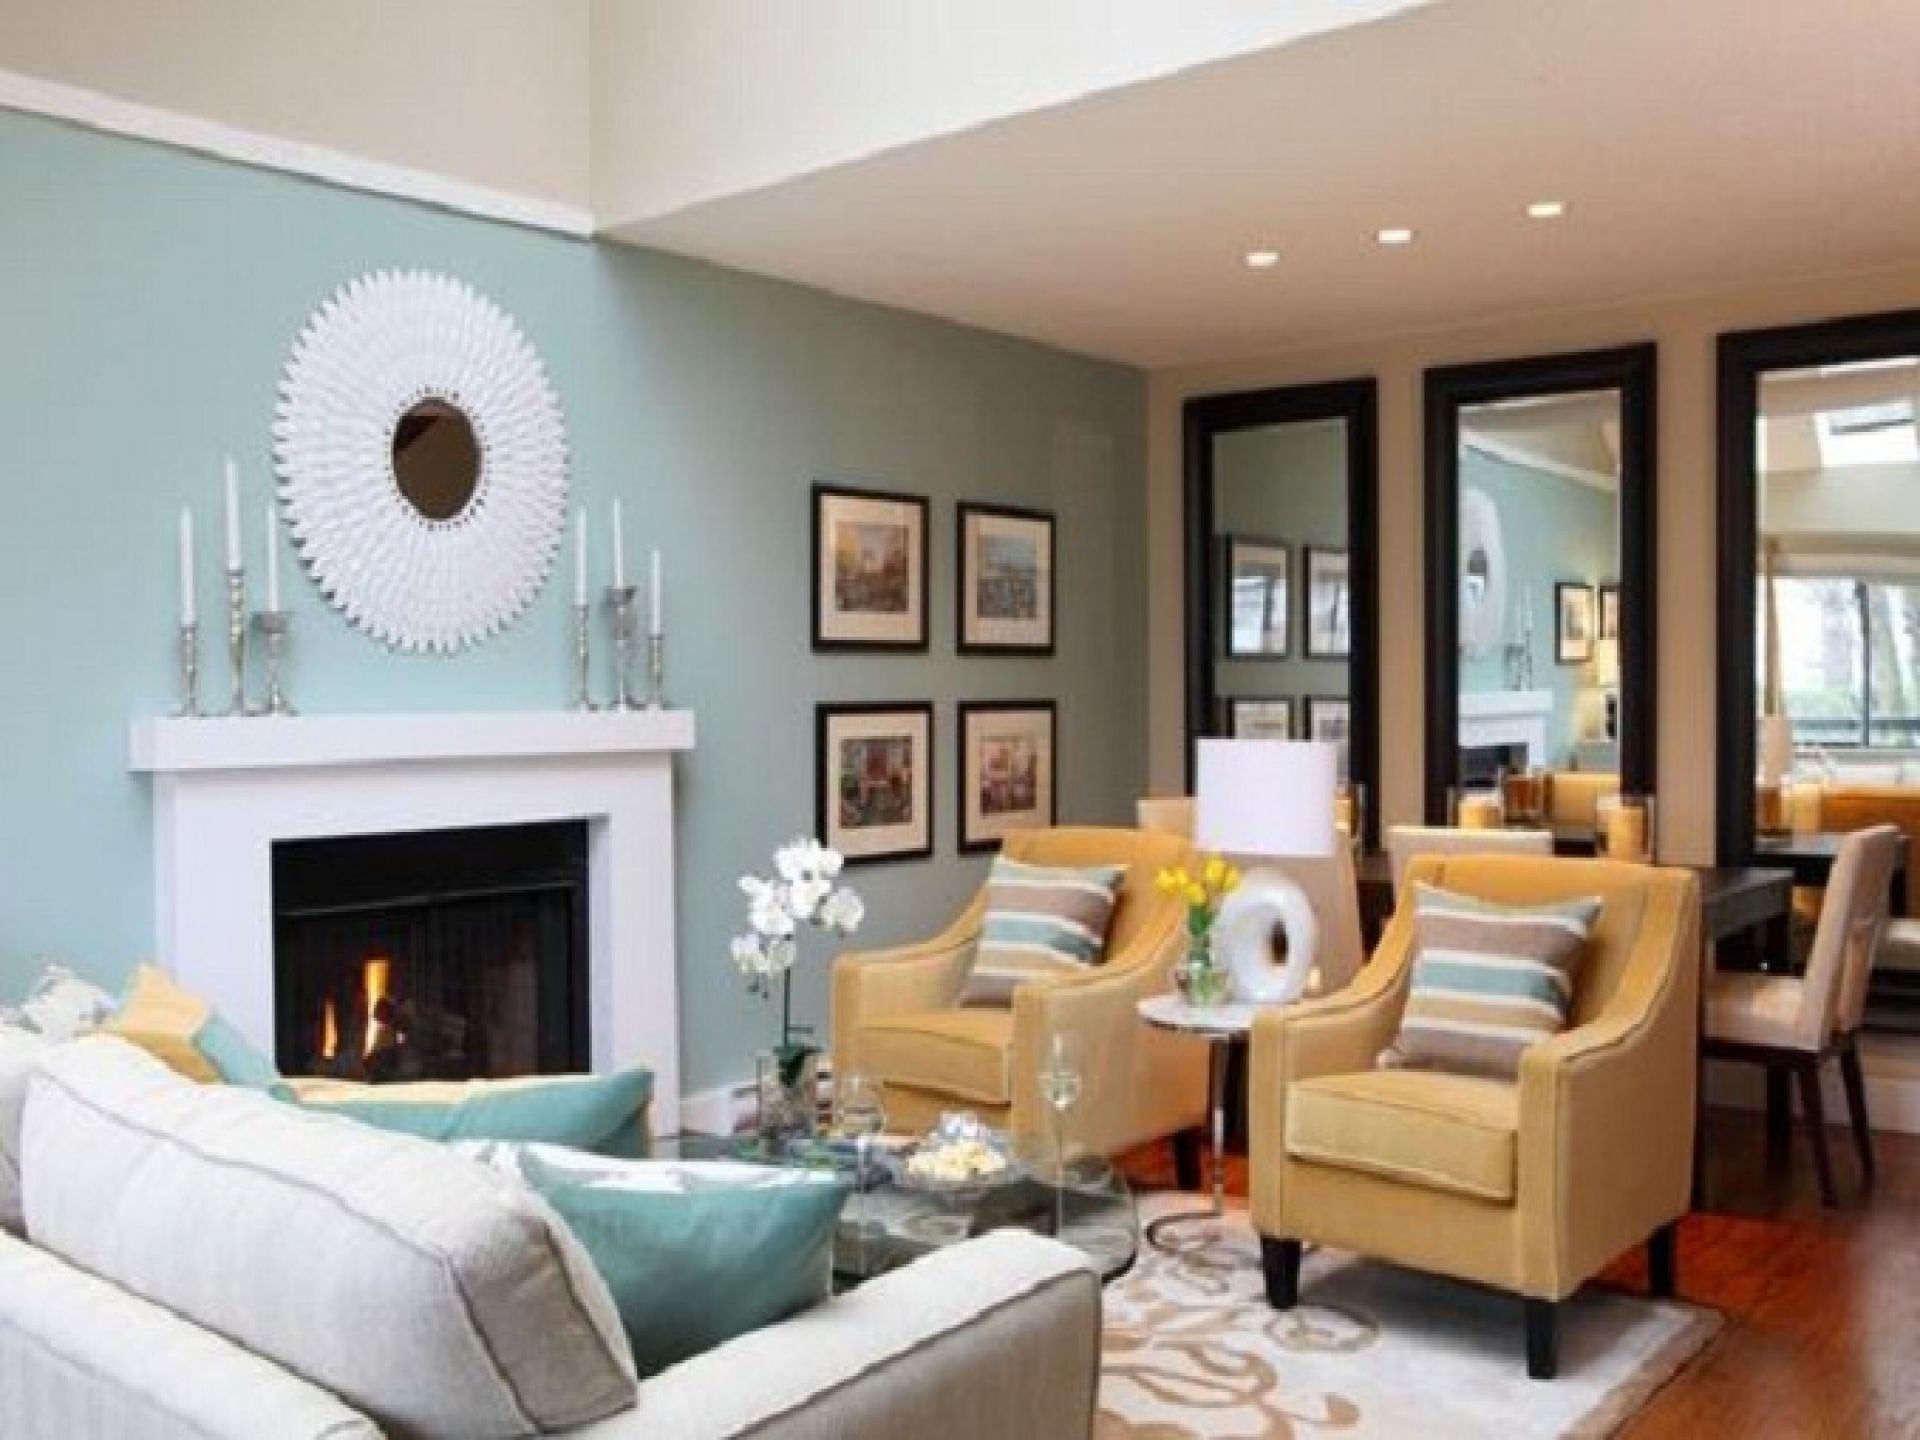 Sophisticated living room color schemes ideas creative white modern fireplace mantle and midcentury living couch and soft blue living room color schemes